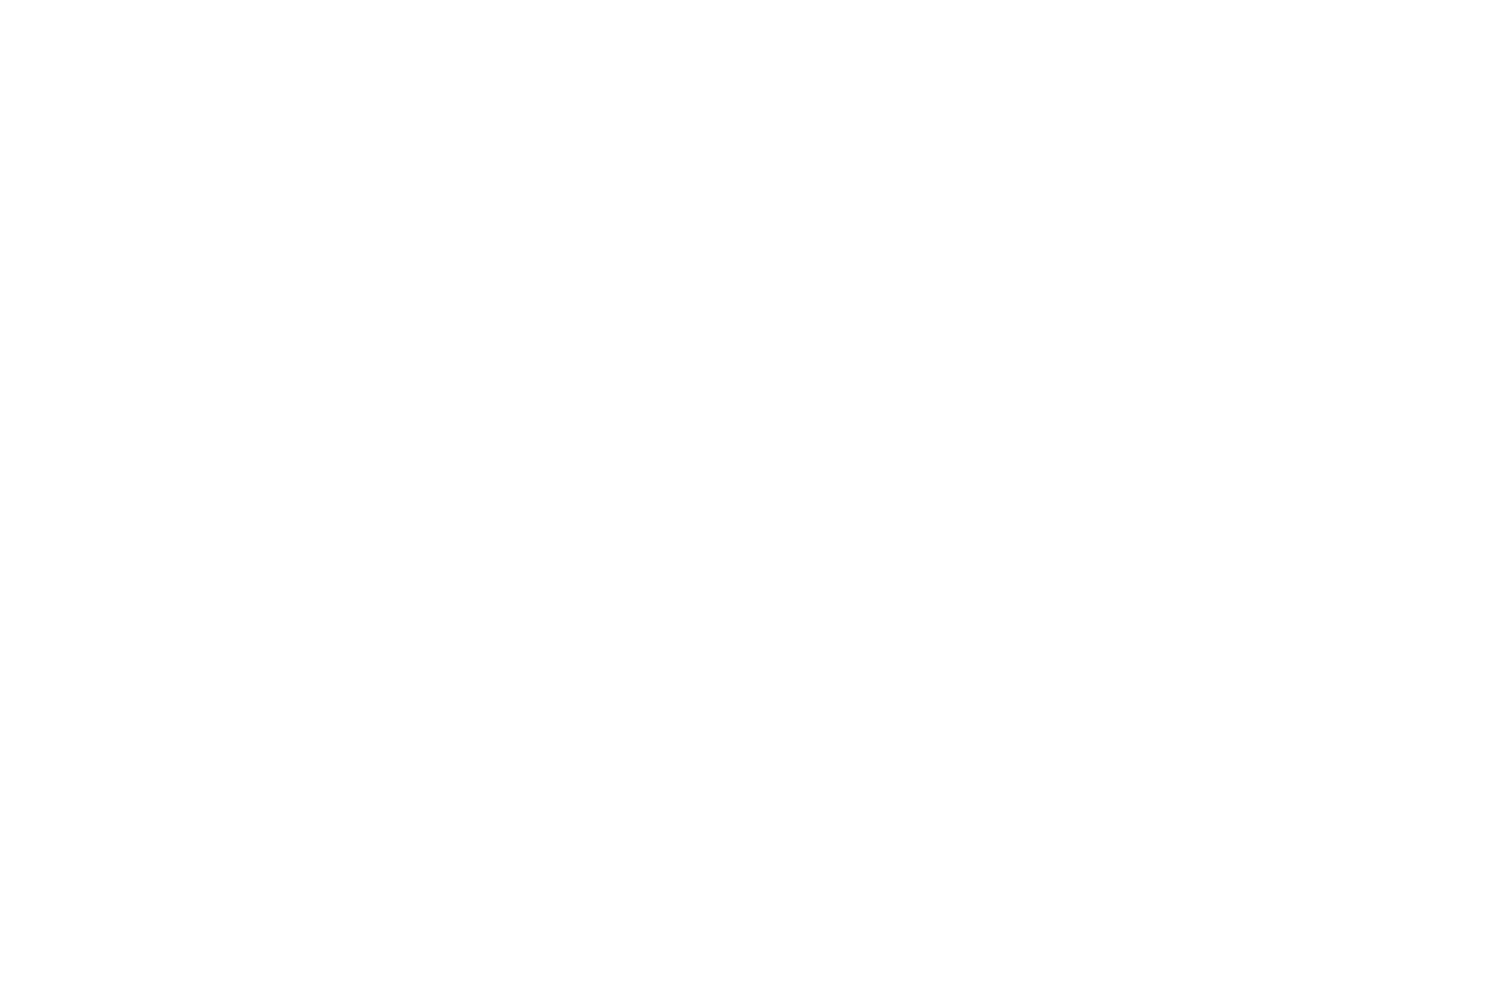 The Noble Force